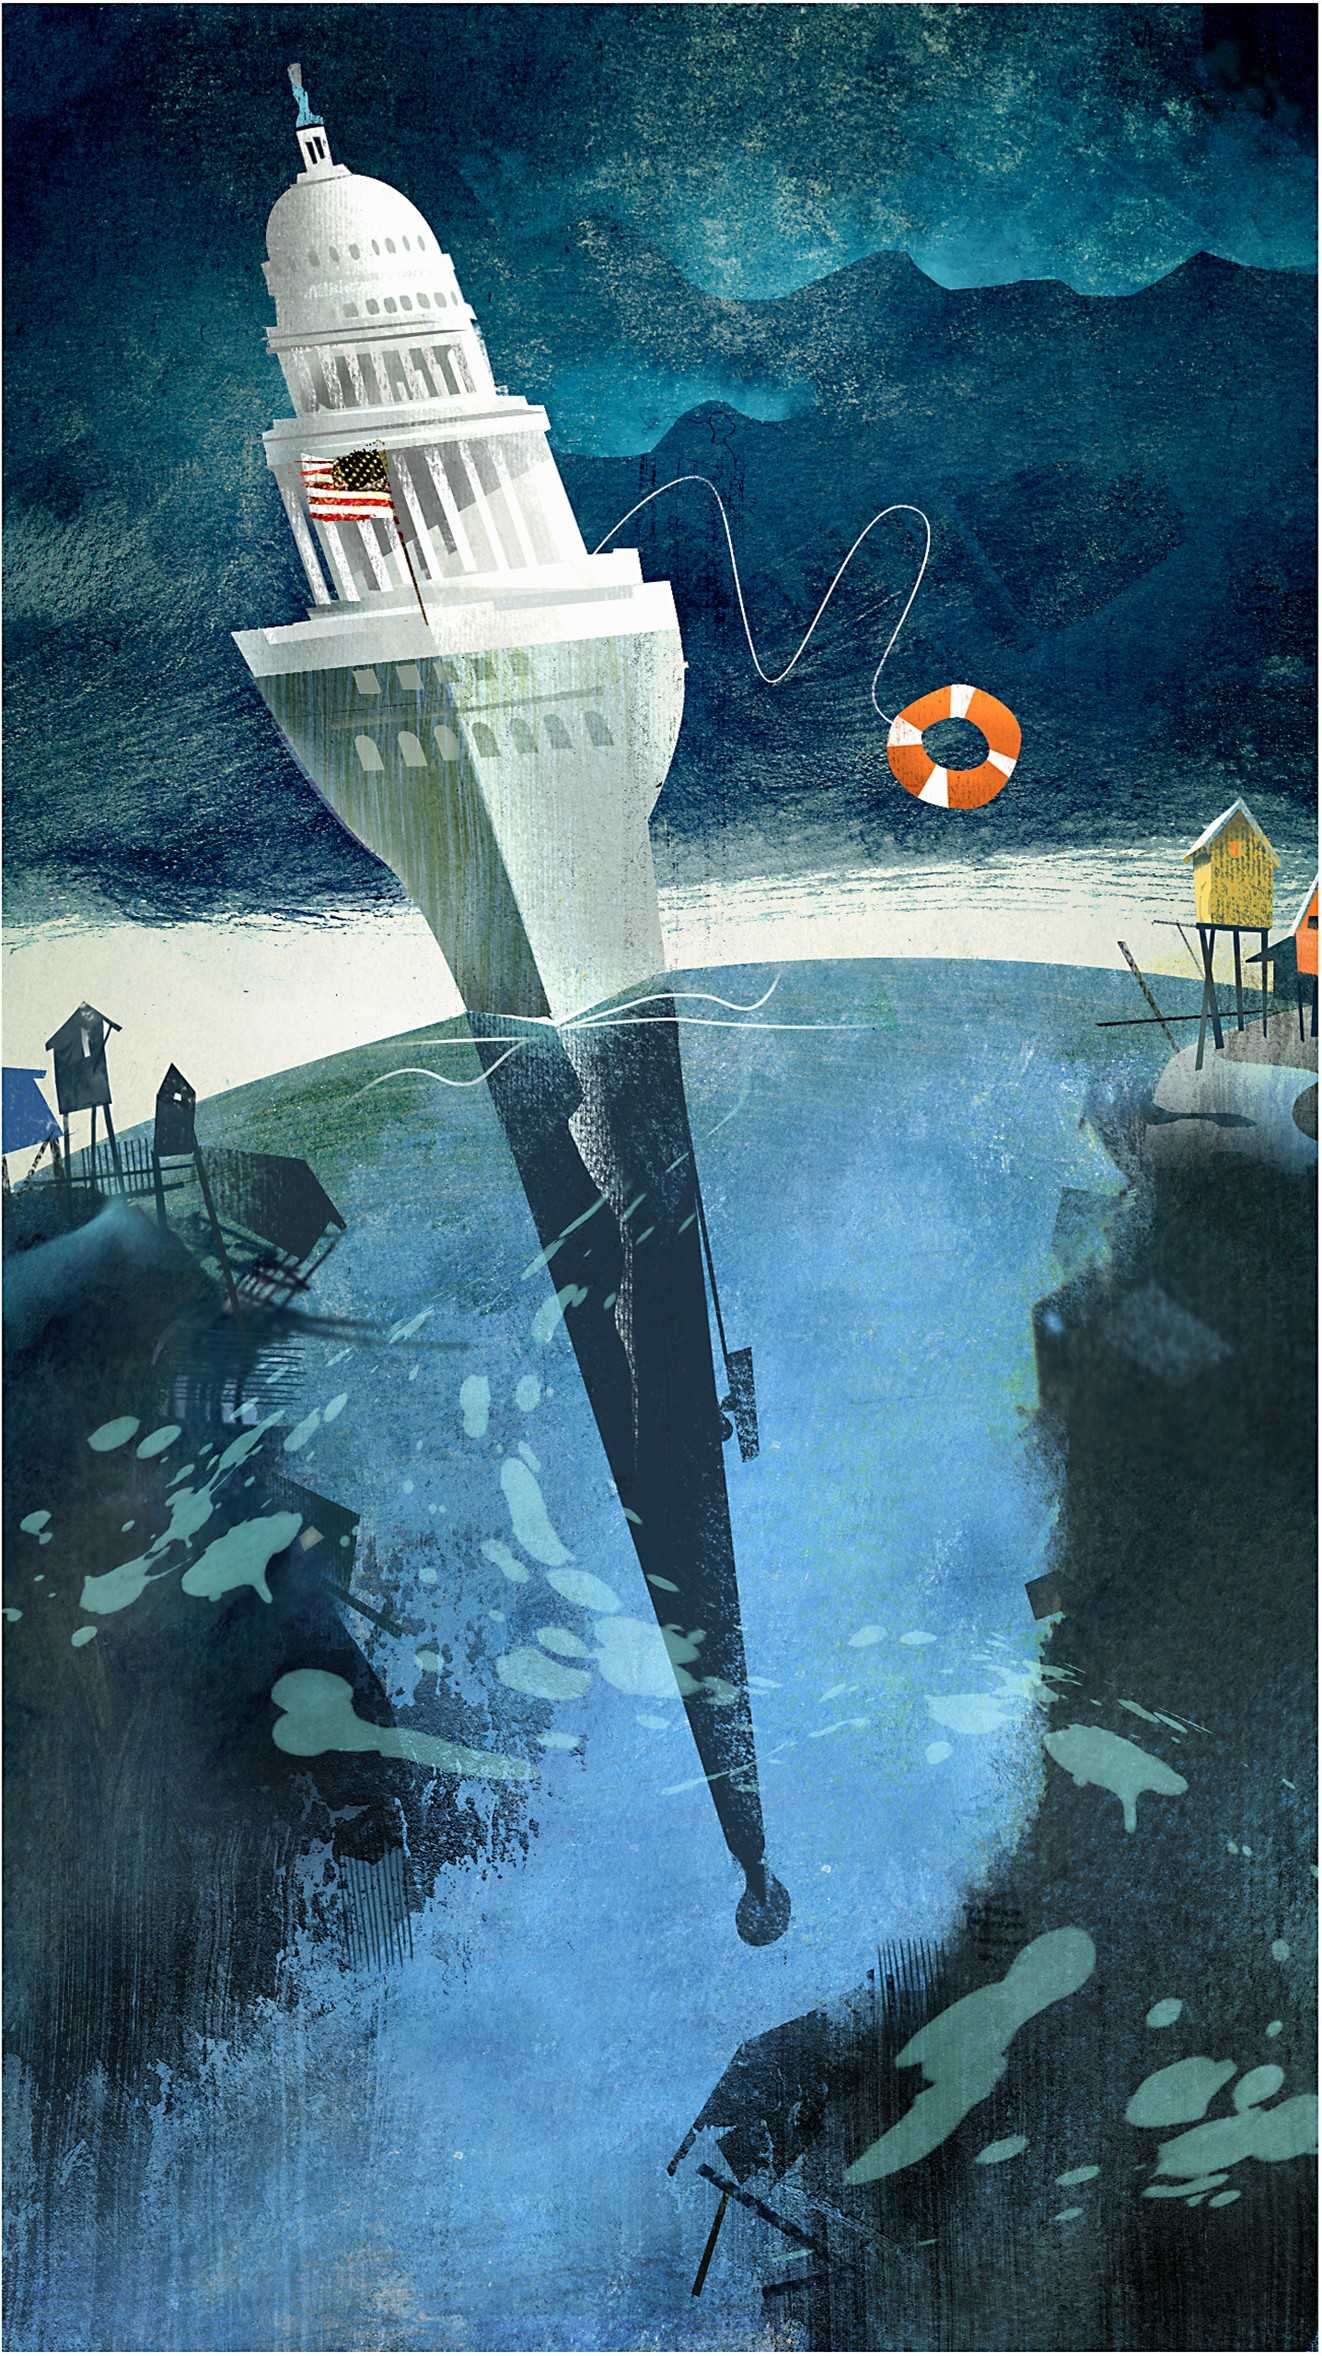 The government's reaction to climate change. Illustration by Daniel Marsula (Pittsburgh Post-Gazette/TNS)